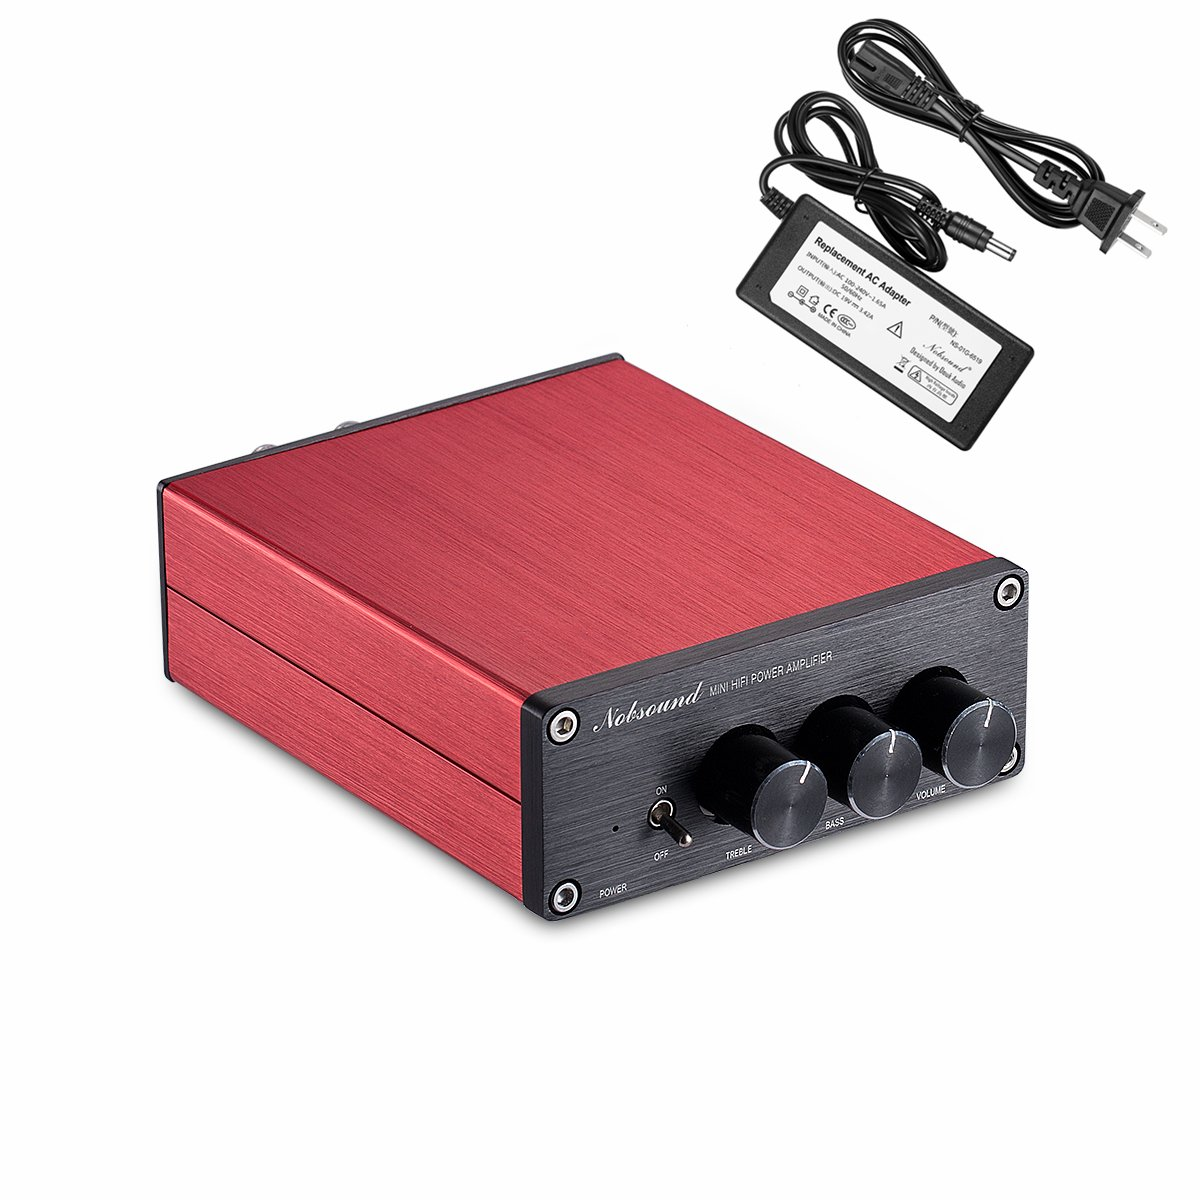 Nobsound Hi-Fi 200-Watt Digital Power Amplifier Stereo Audio Amp Treble Bass Control with Power Supply